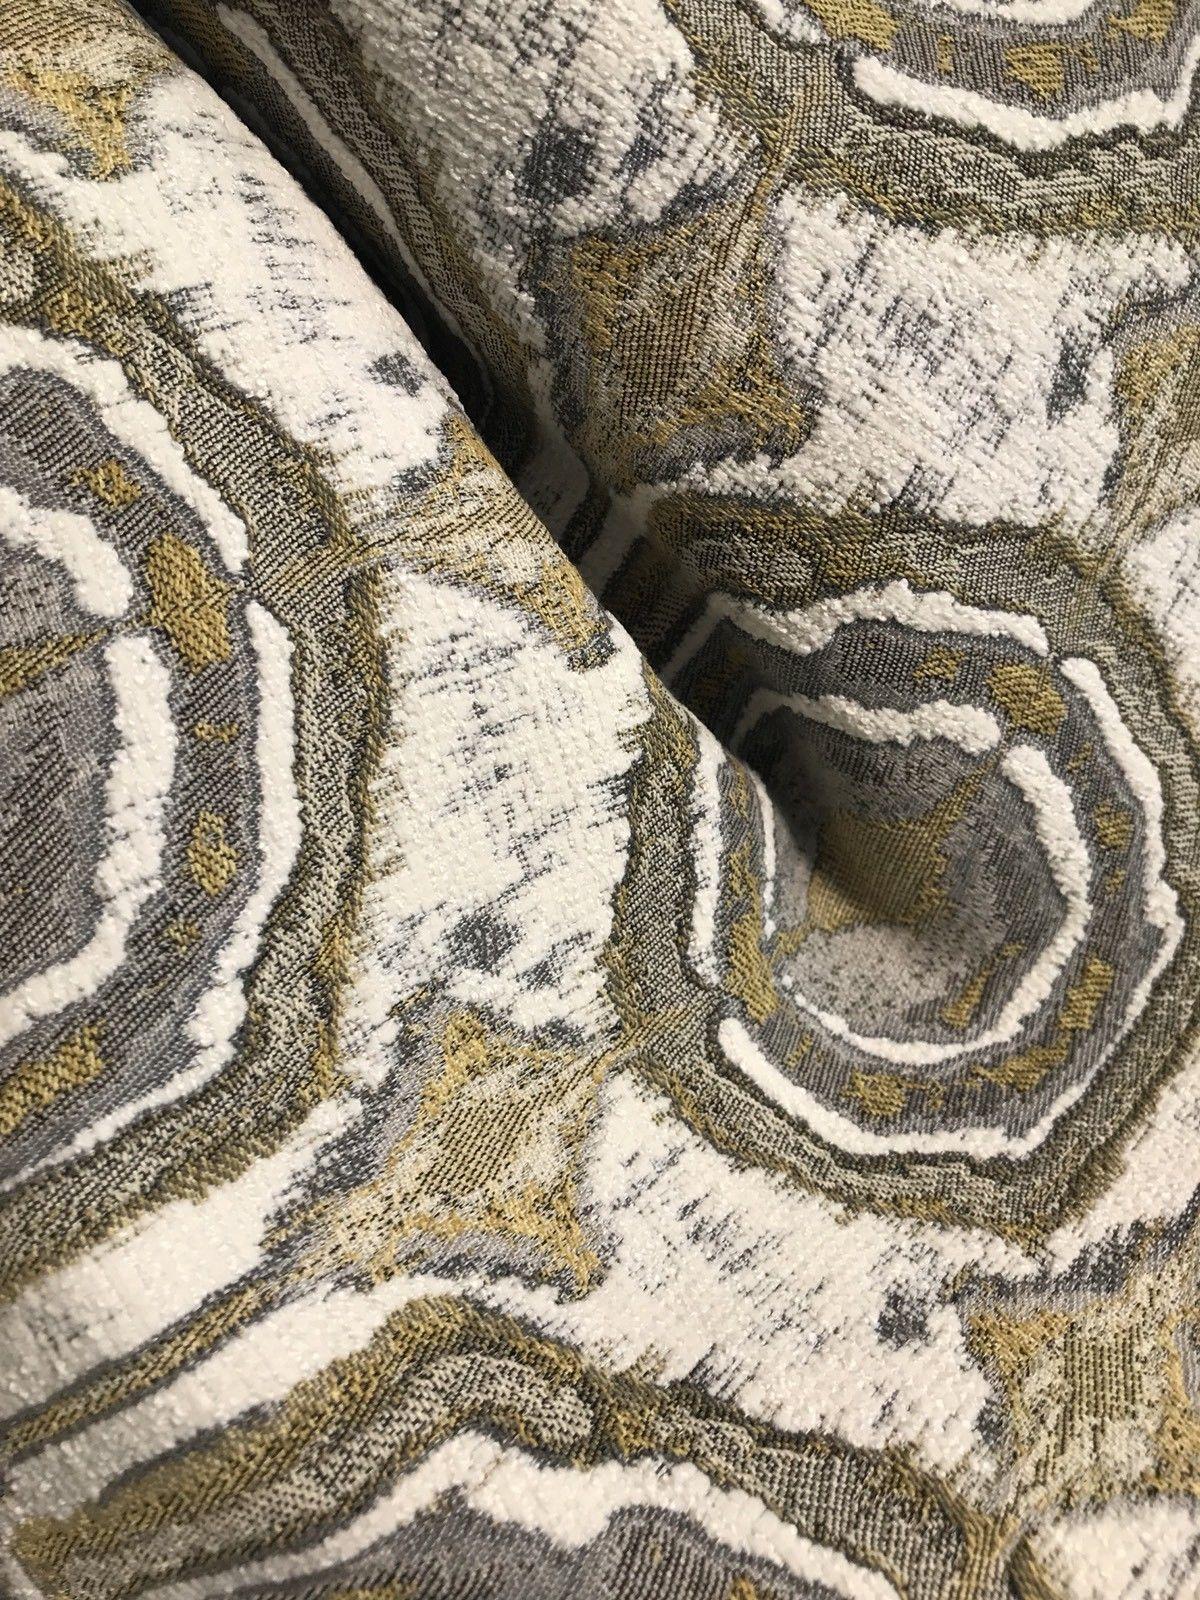 SWATCH Velvet Chenille Upholstery Decorating Fabric - Gold Ivory Gray - Fancy Styles Fabric Boutique